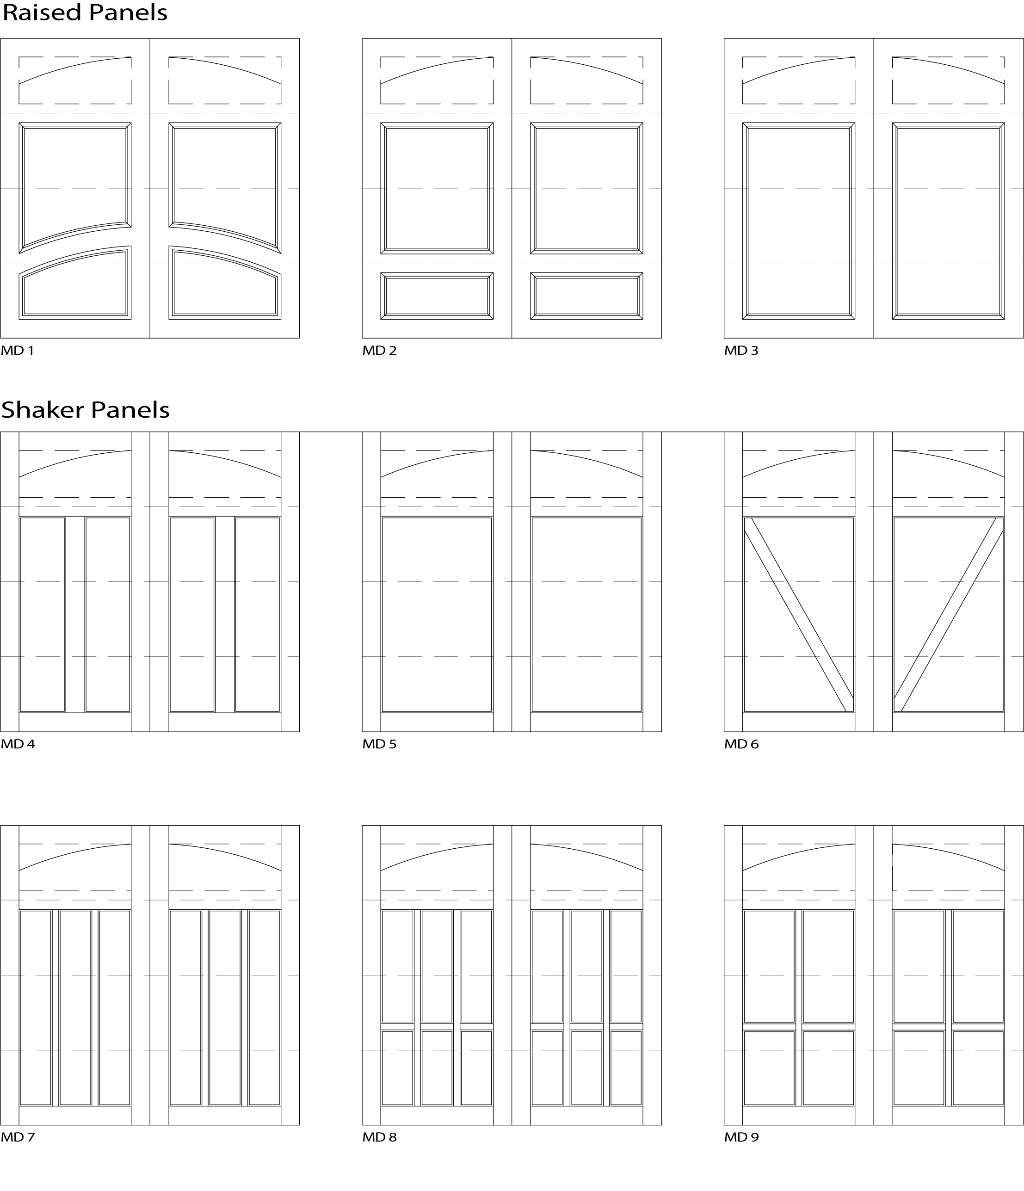 Garage 1 Door Designs - Customizable Size, Shape and Styles Based on Preference